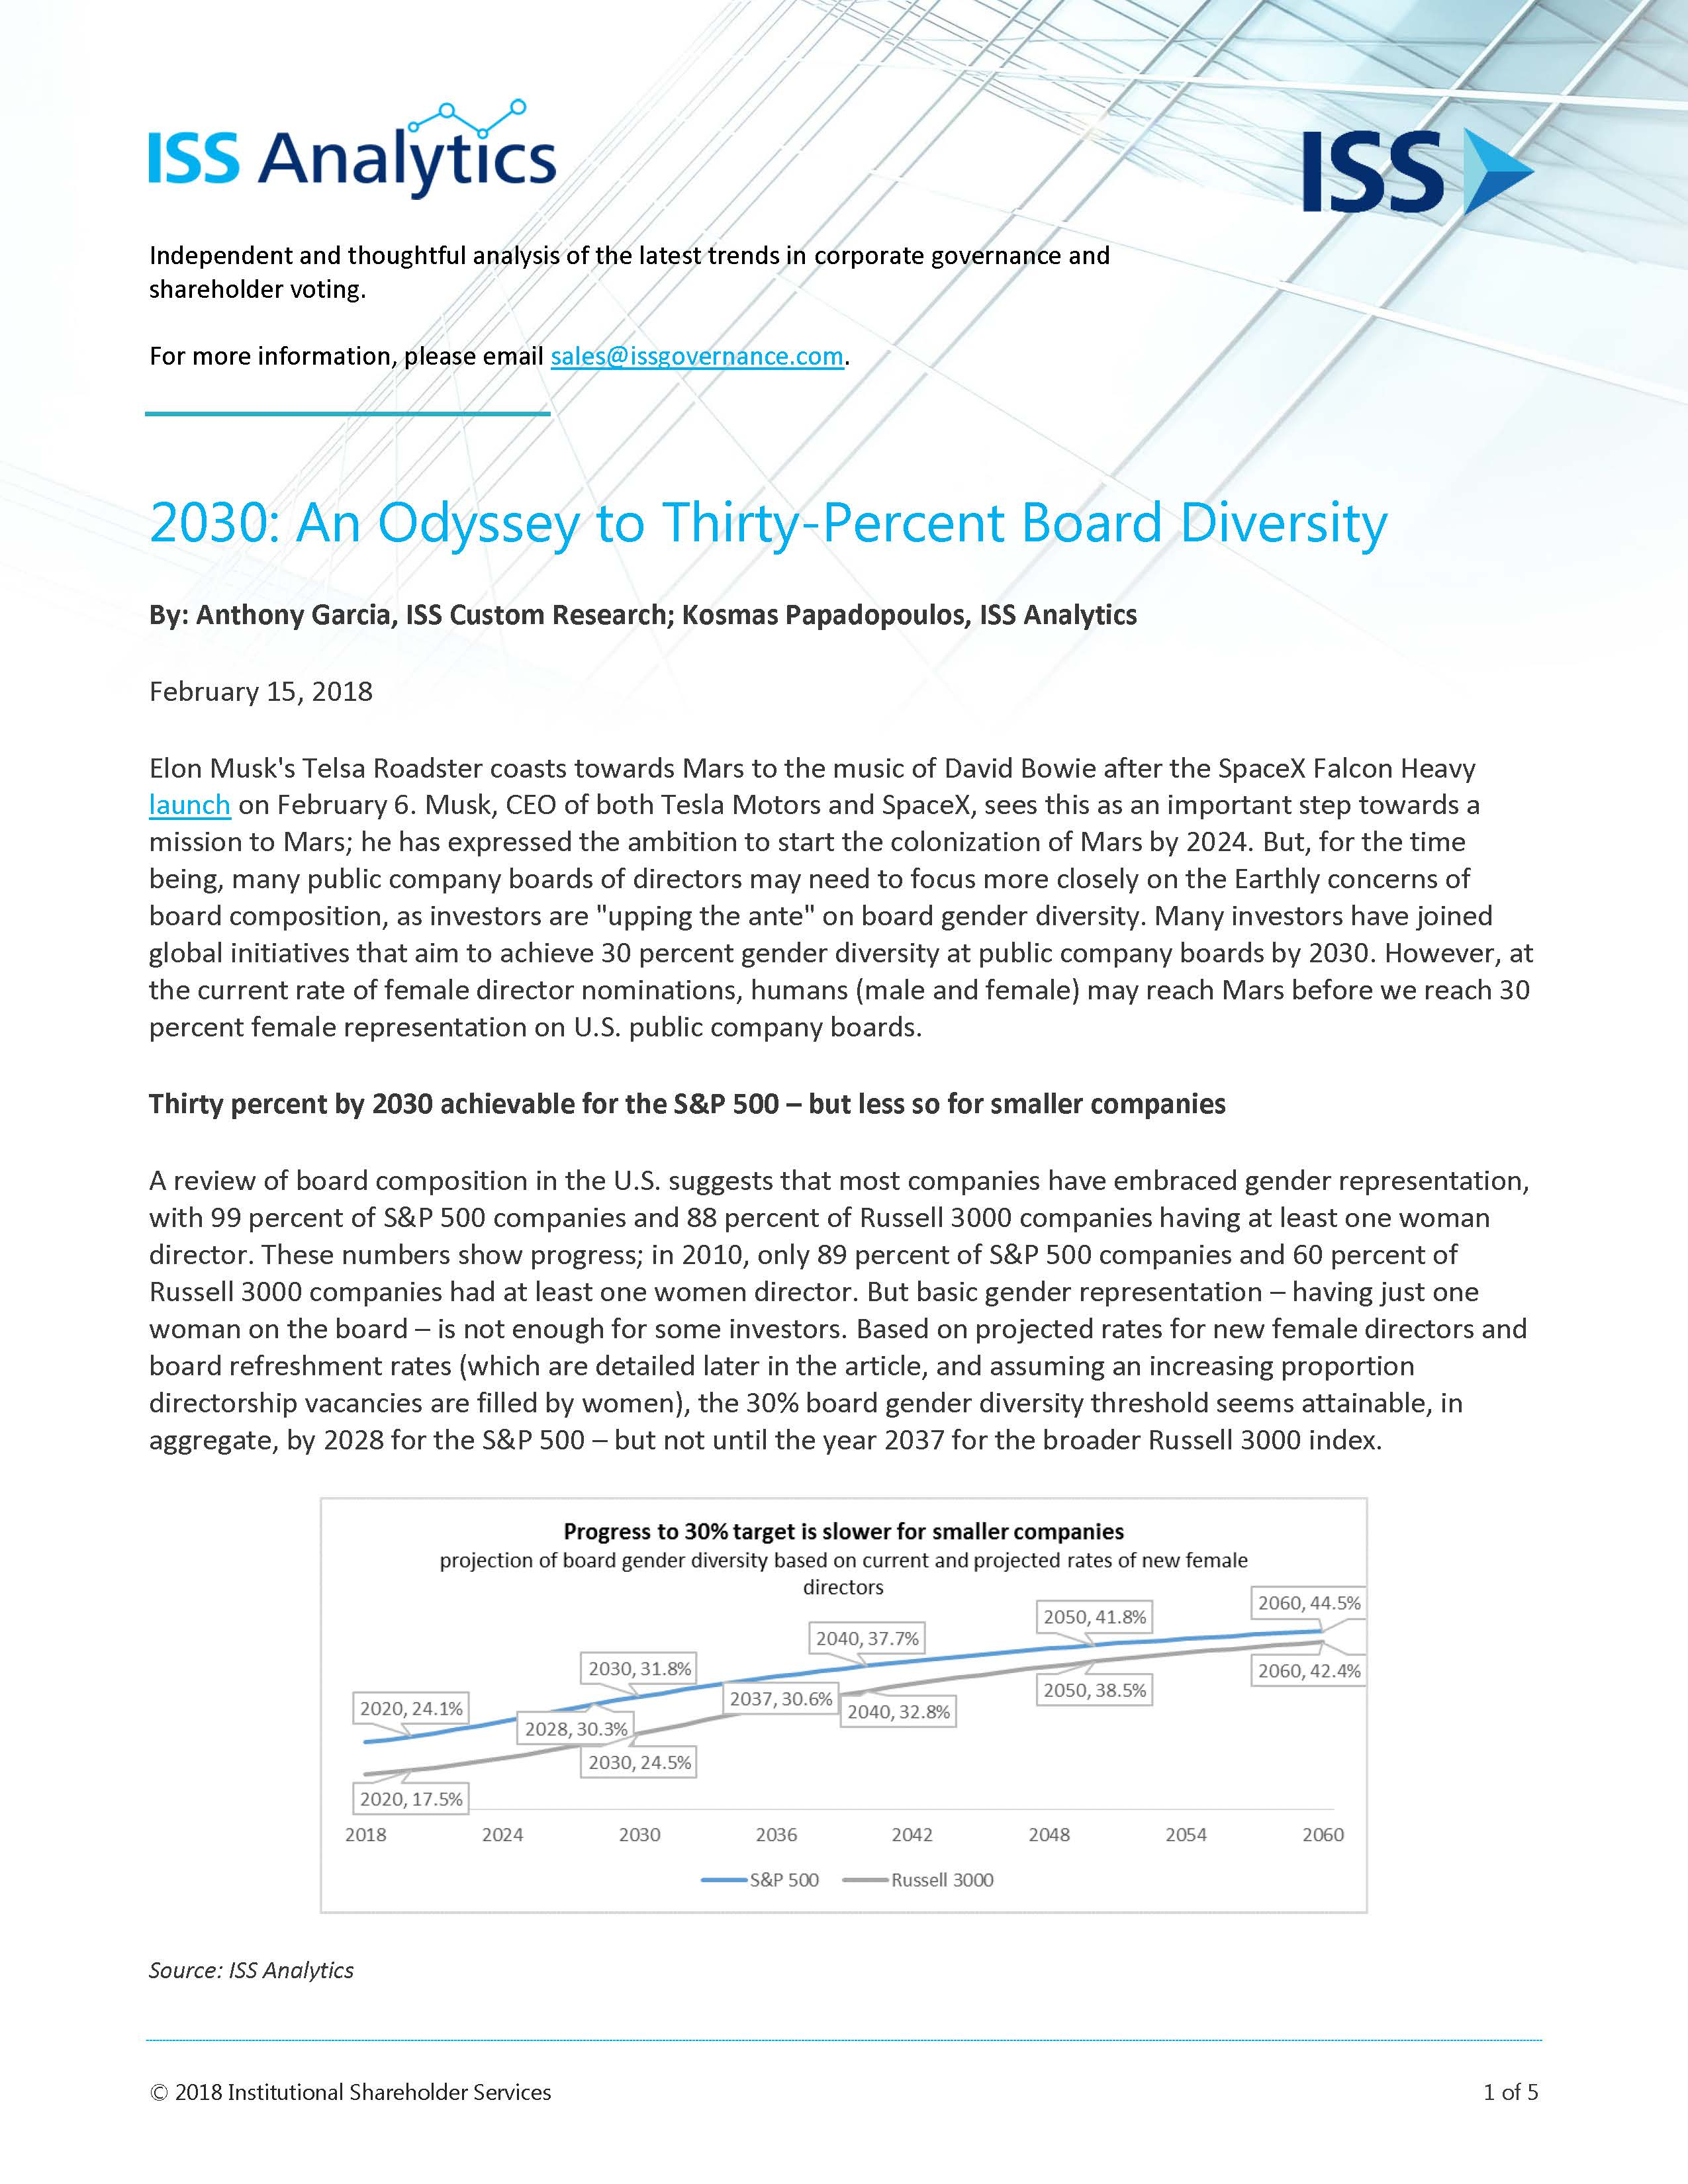 2030-an-odyssey-to-thirty-percent-board-diversity_page_1